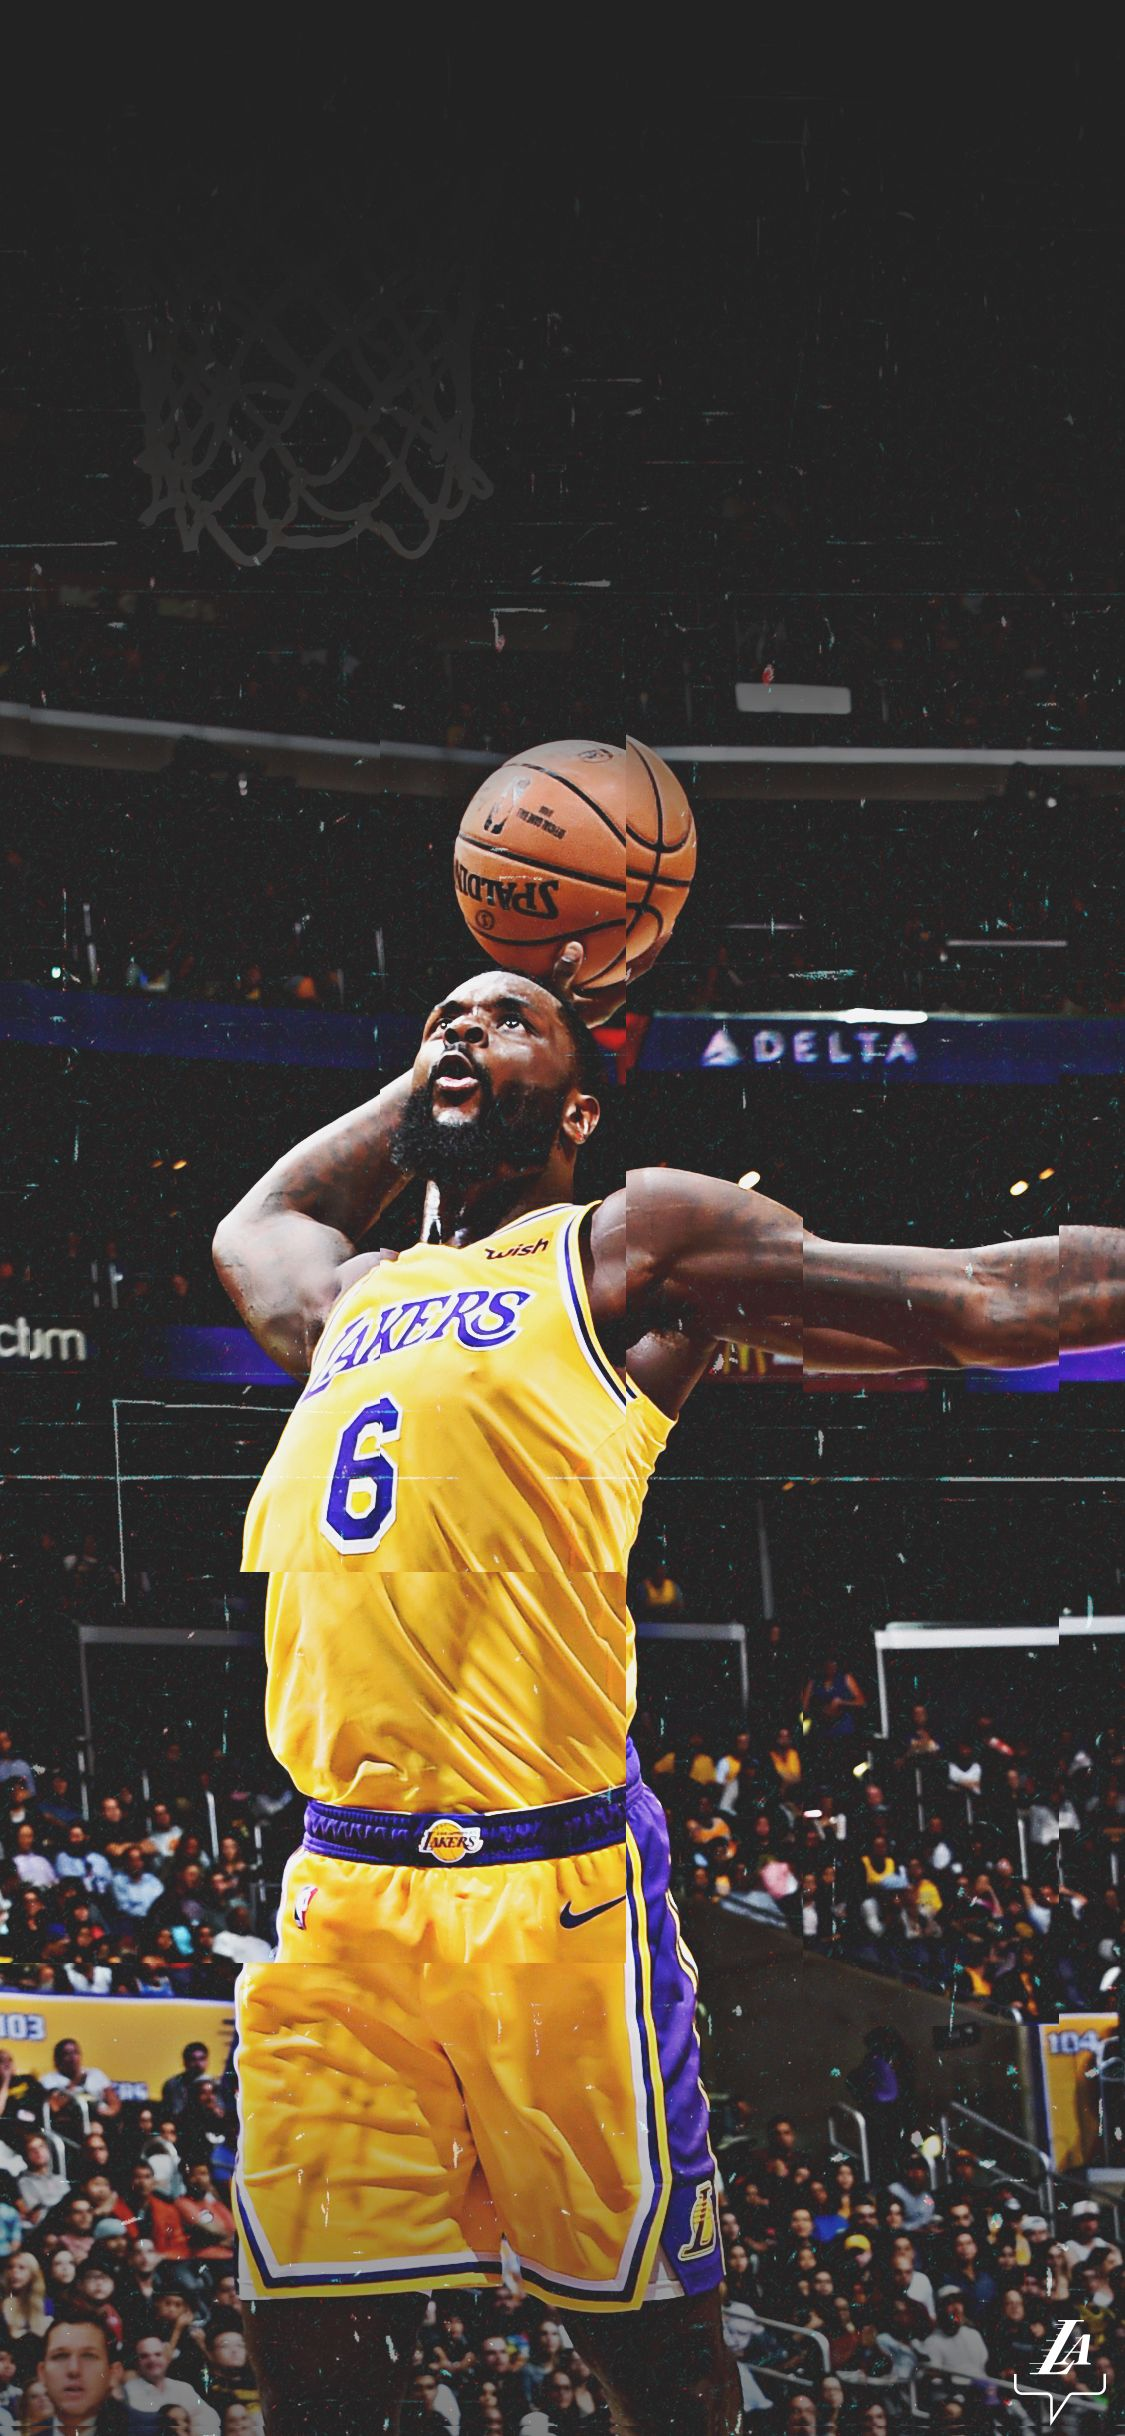 Nike Basketball Wallpaper Lance Stephenson Wallpaper Lakers